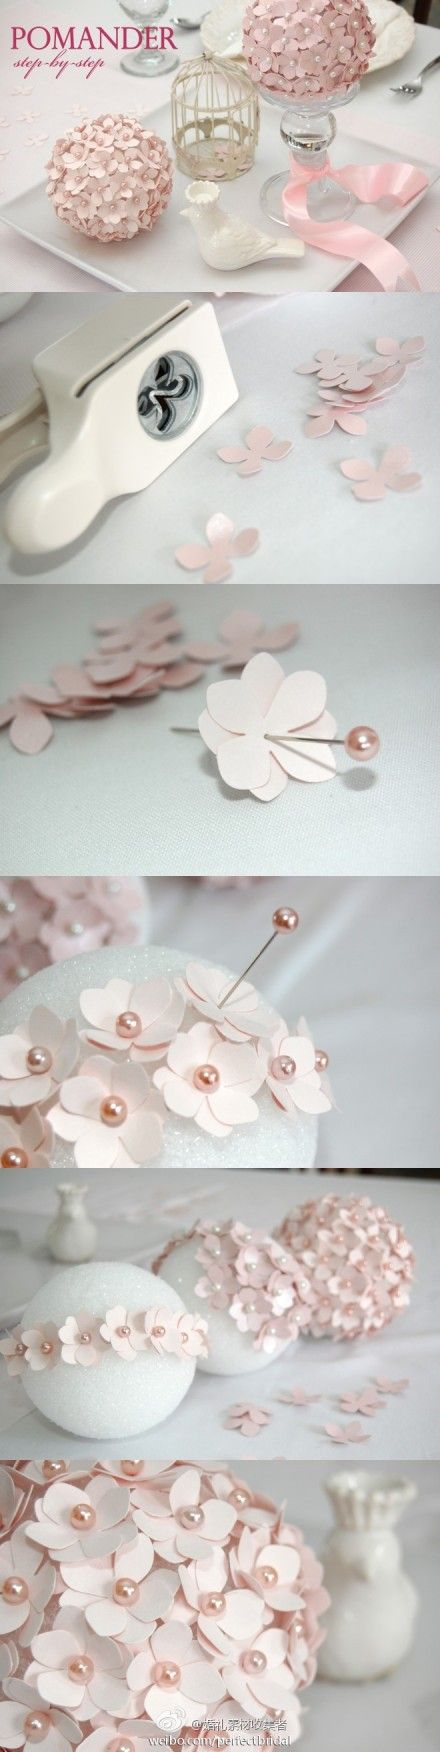 So Pretty! could also use little fabric premade flower petals that come in lots of colours.